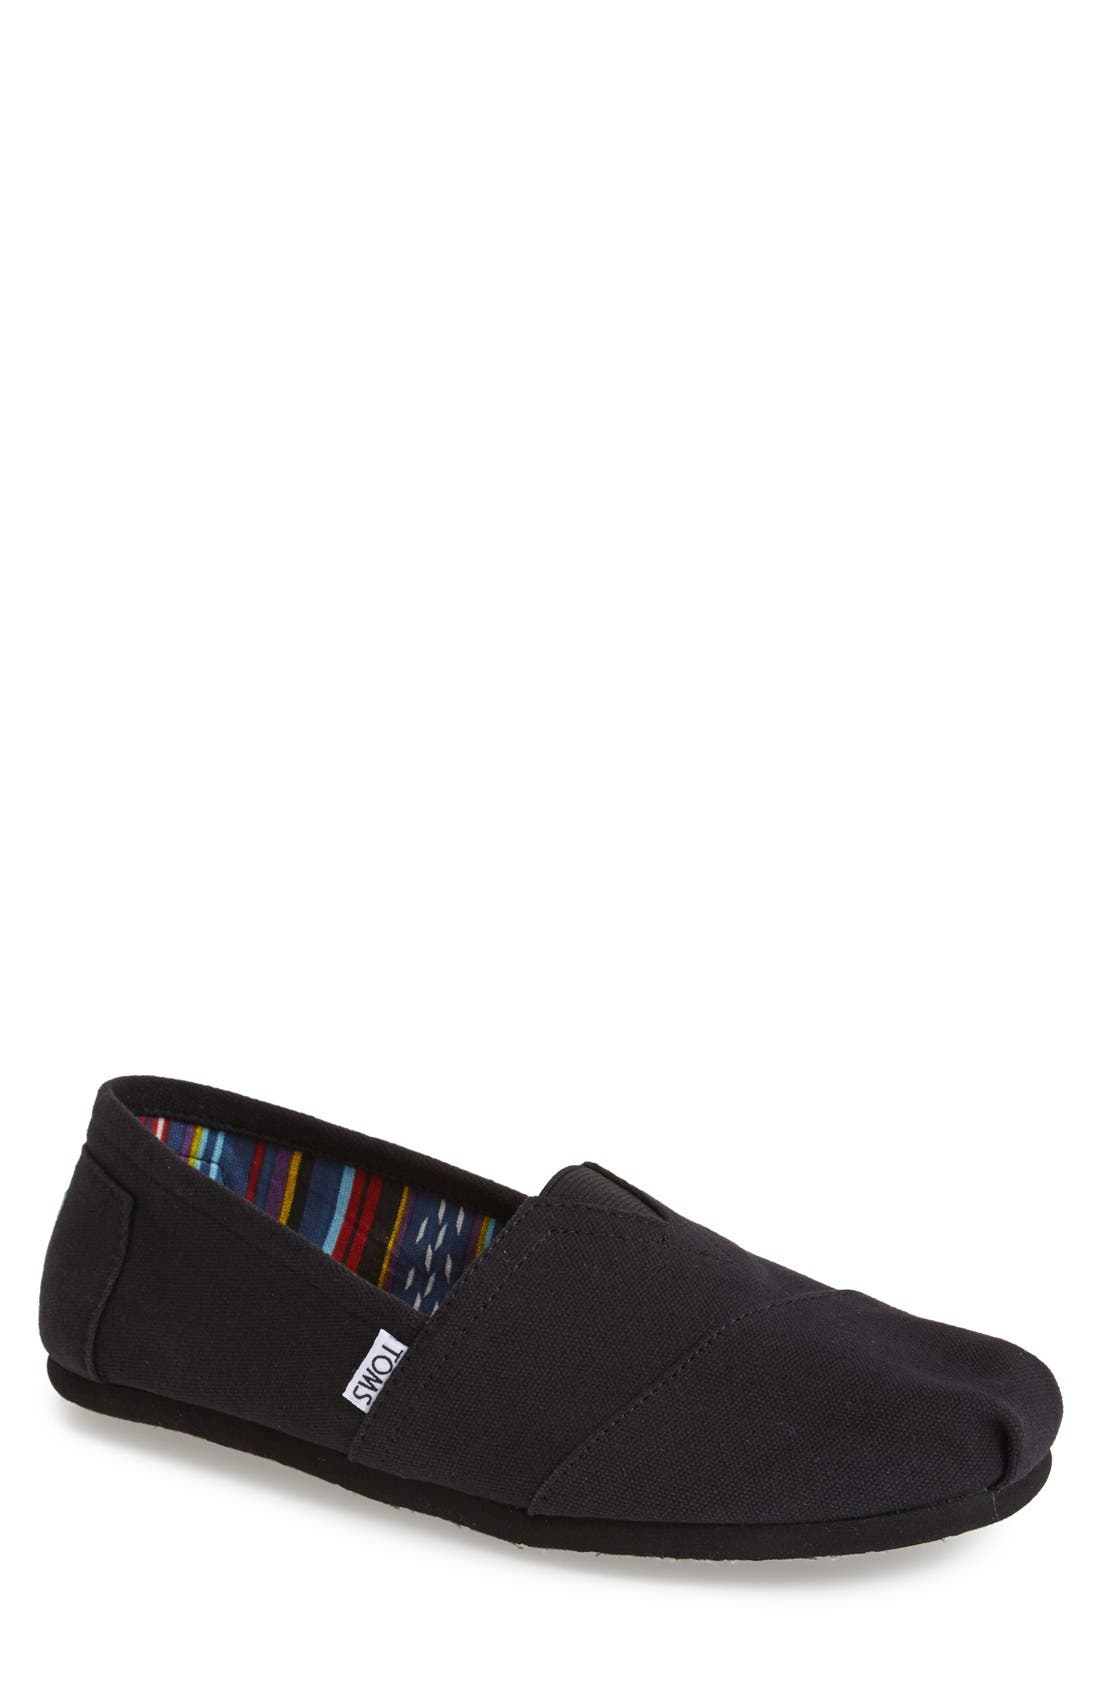 'Classic' Canvas Slip-On,                             Main thumbnail 1, color,                             Black/ Black